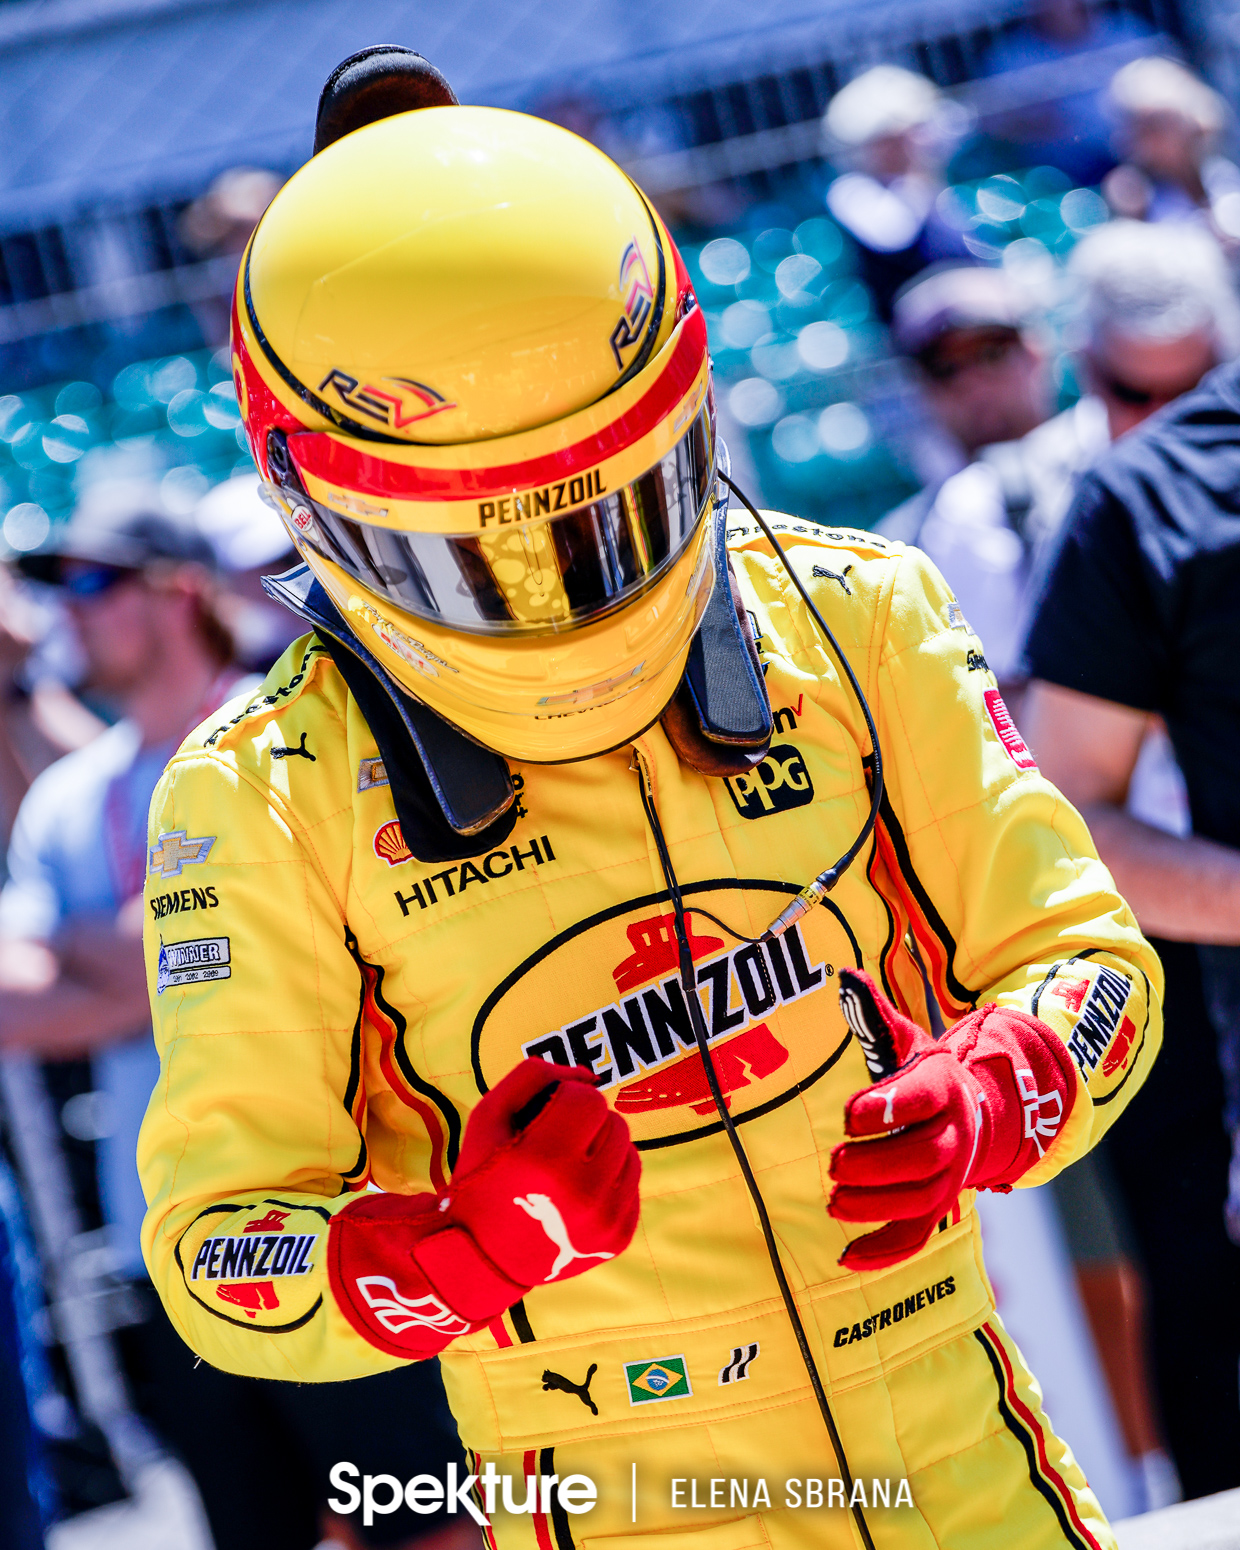 Earchphoto Sports - Helio Castroneves prepares to drive